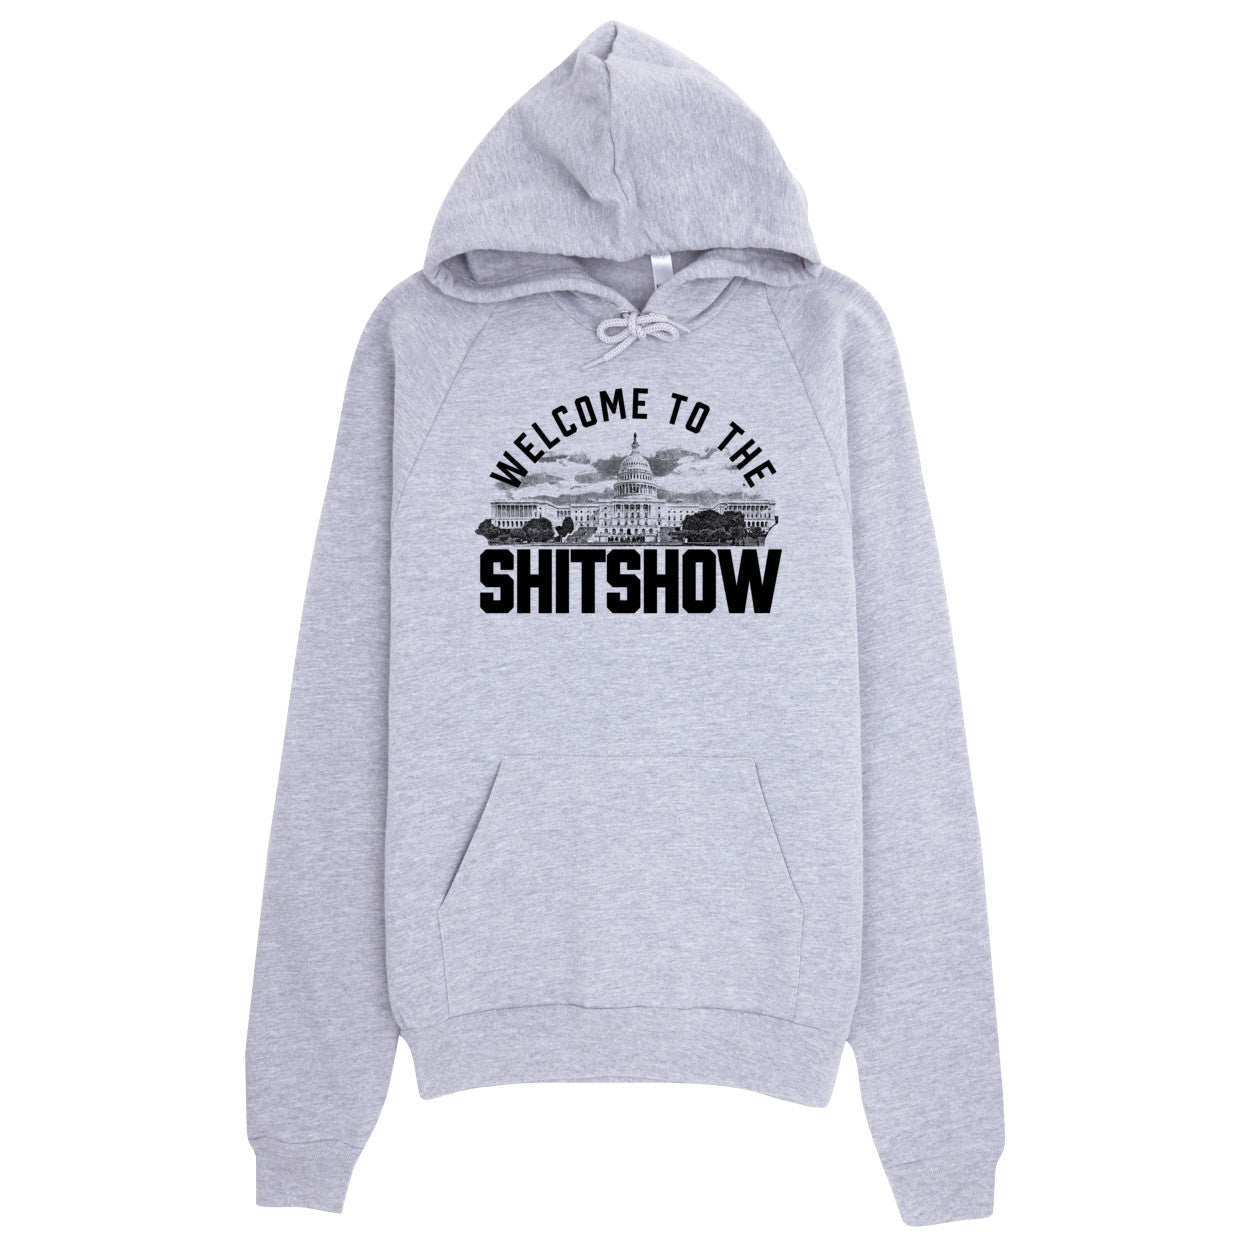 93d8d002bdc2 Welcome To The Shitshow American Apparel Fleece Hoodies - Liberty Maniacs